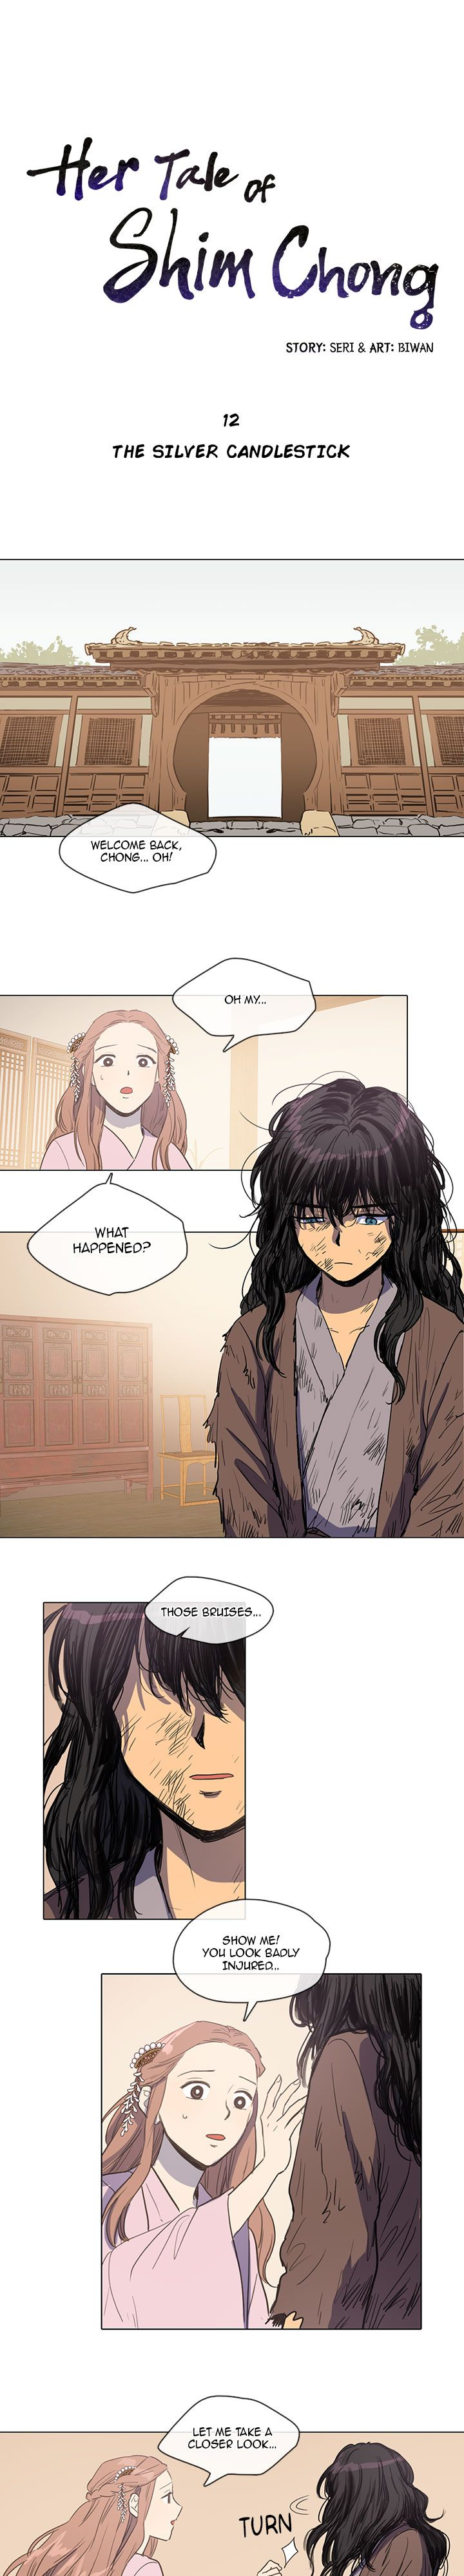 Her Tale of Shim Chong Ch.12